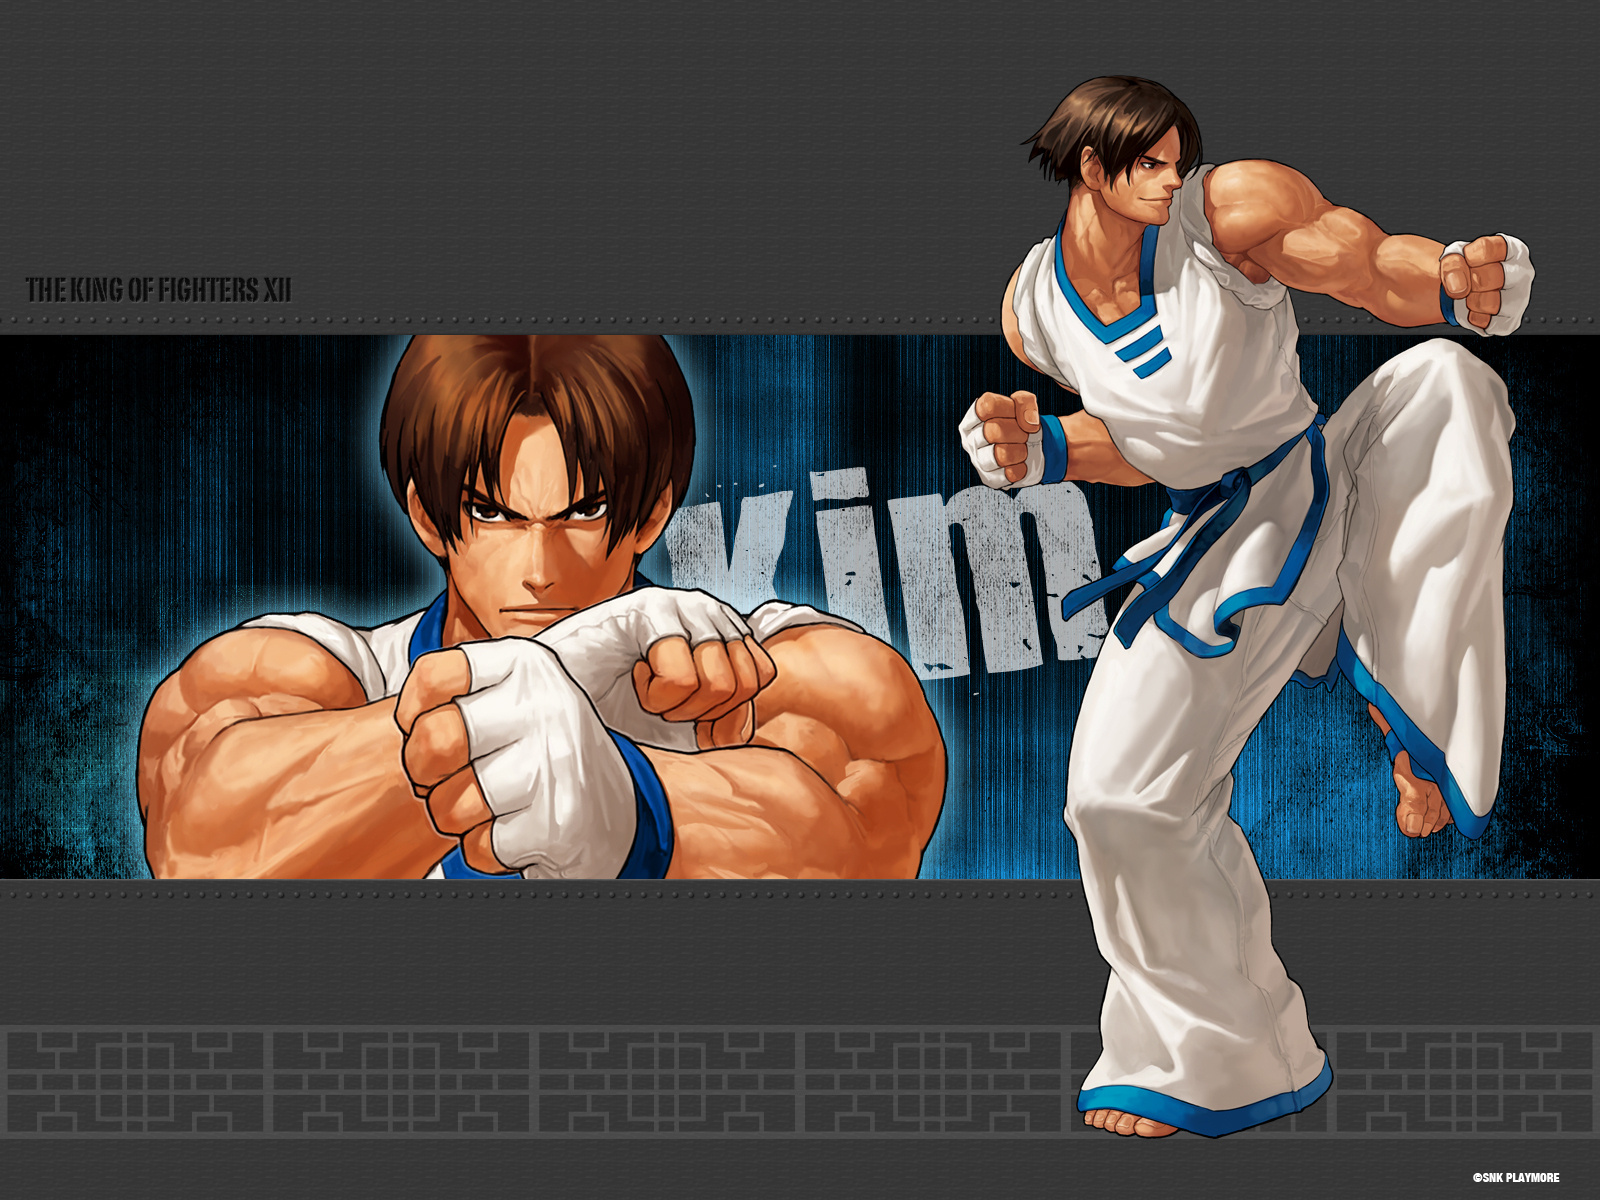 kof xii kim the king of fighters karatasi la kupamba ukuta 13589080 fanpop fanpop